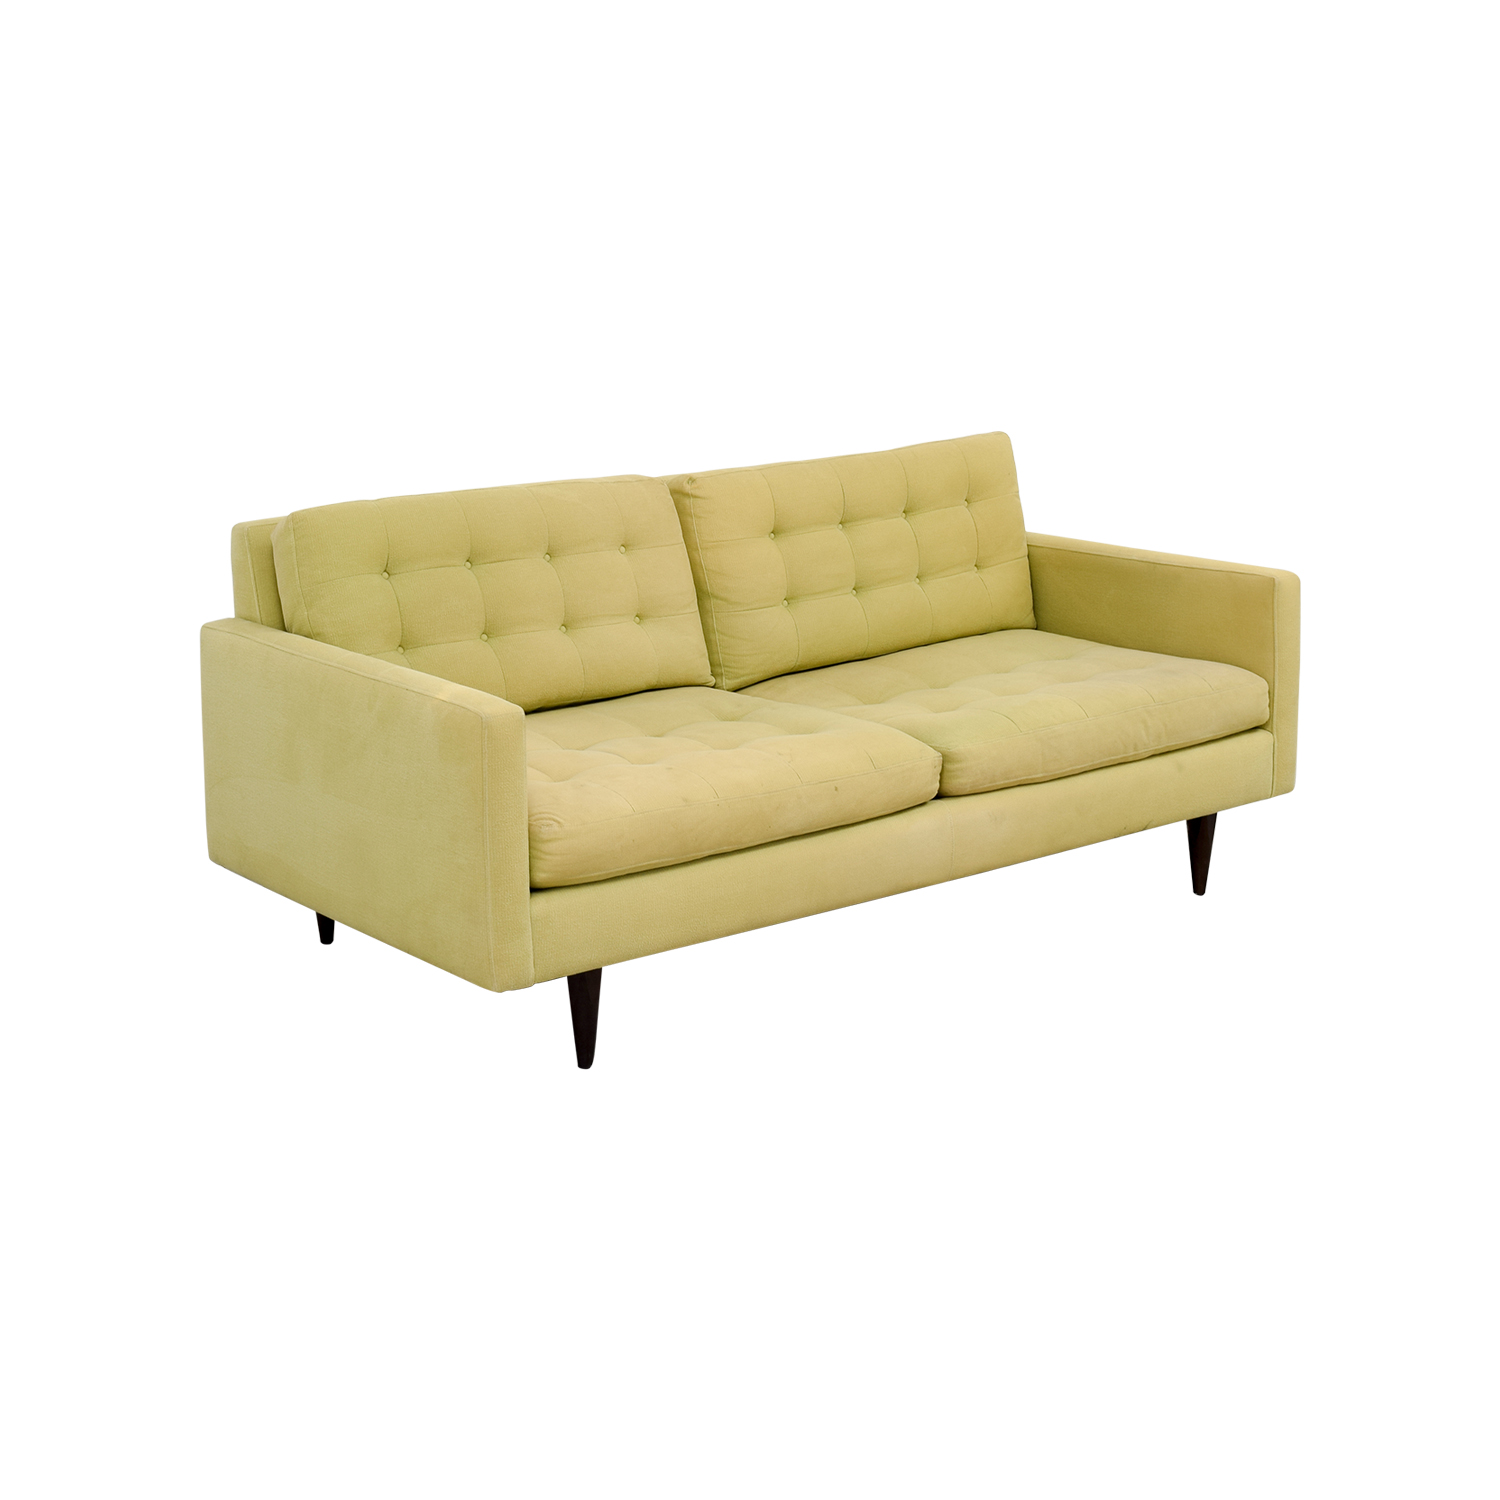 crate and barrel shelter sofa dimensions corner sofas with beds 77 off petrie pale green